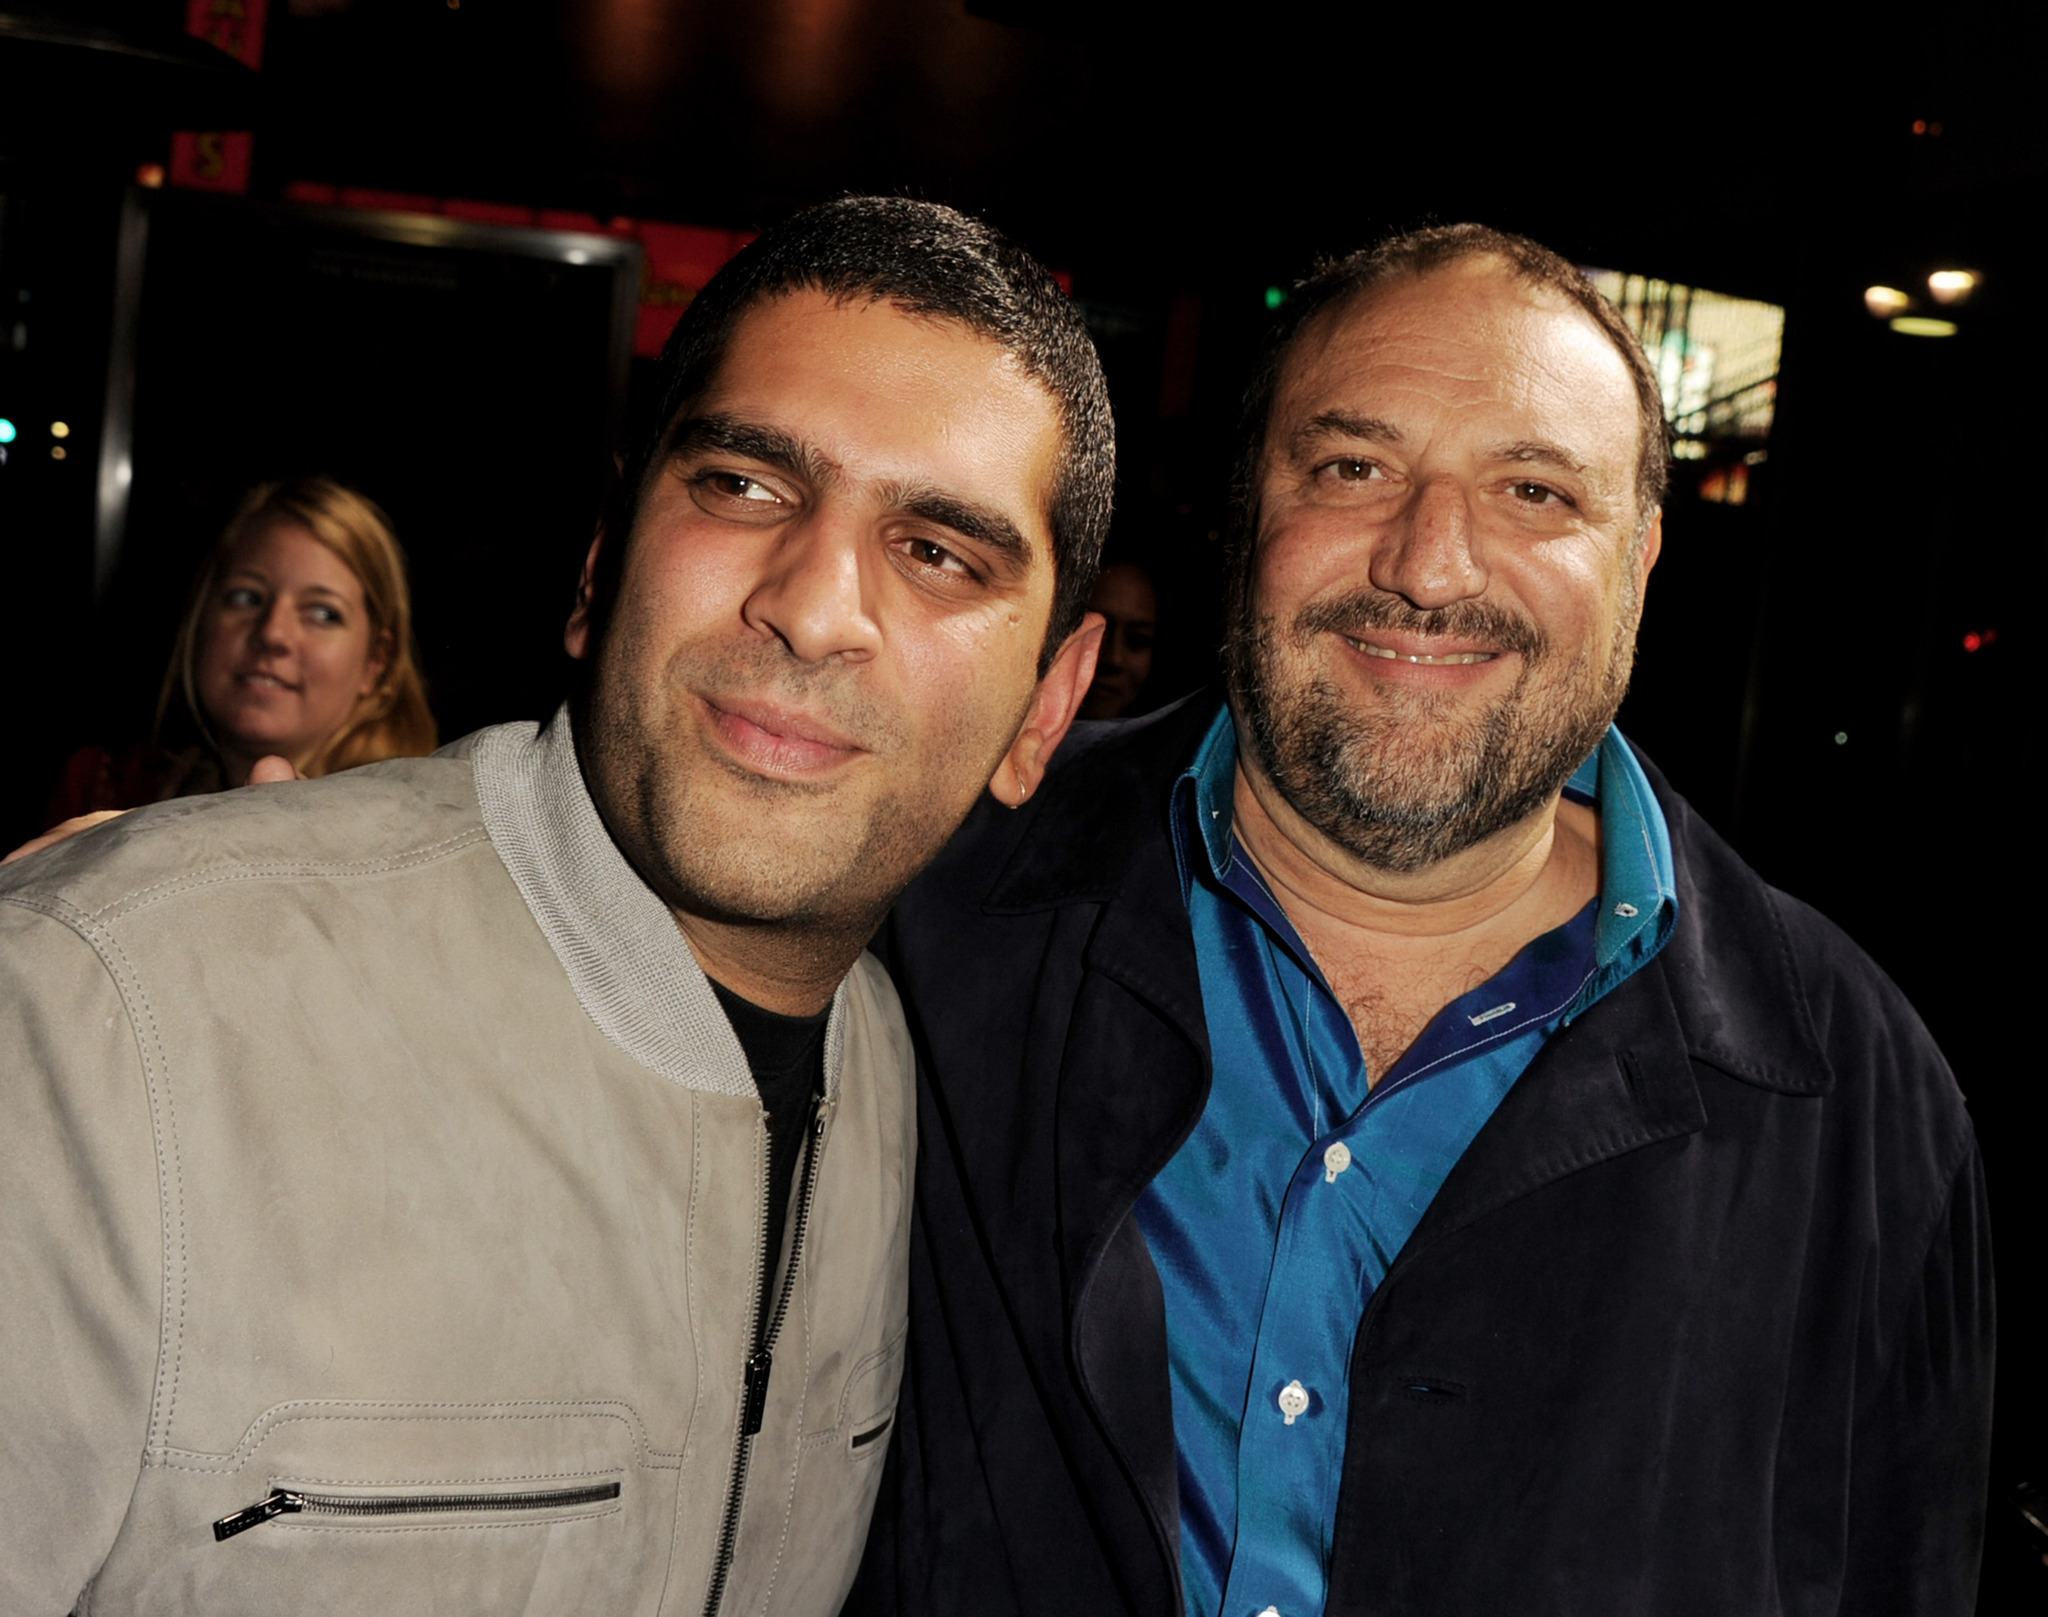 Joel Silver and Nima Nourizadeh at an event for Project X (2012)